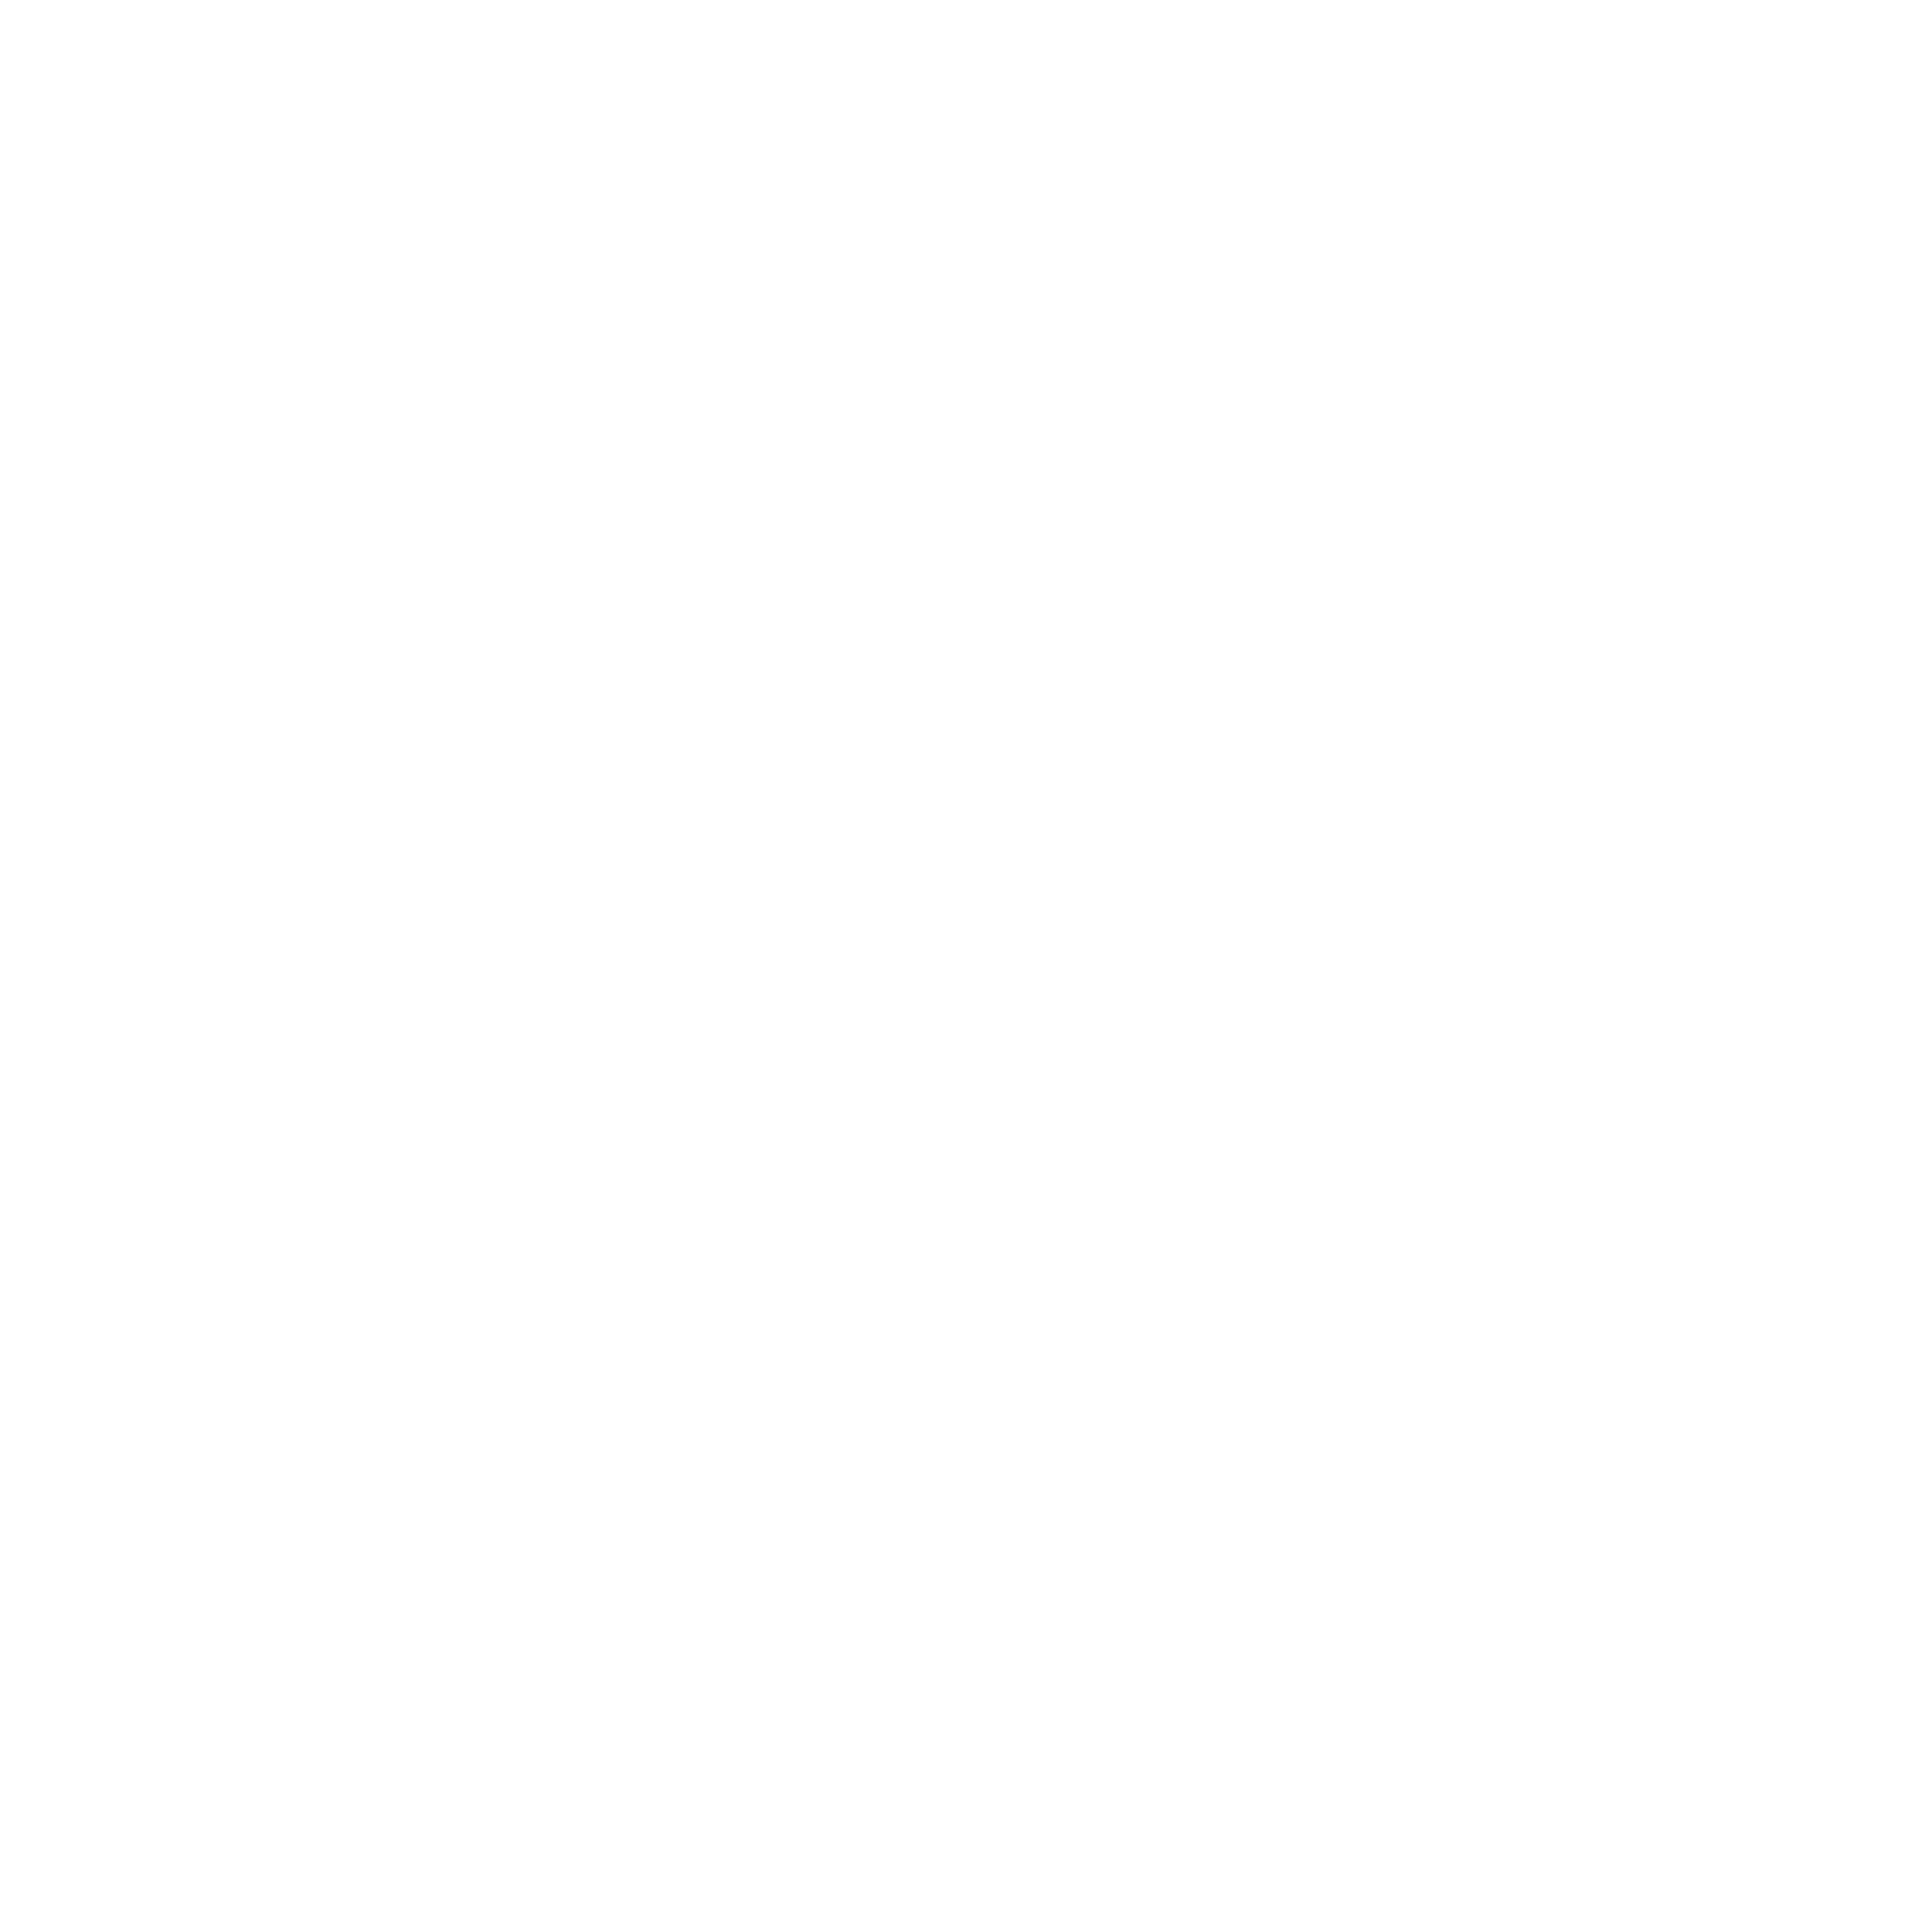 Advanced Terpene Solutions